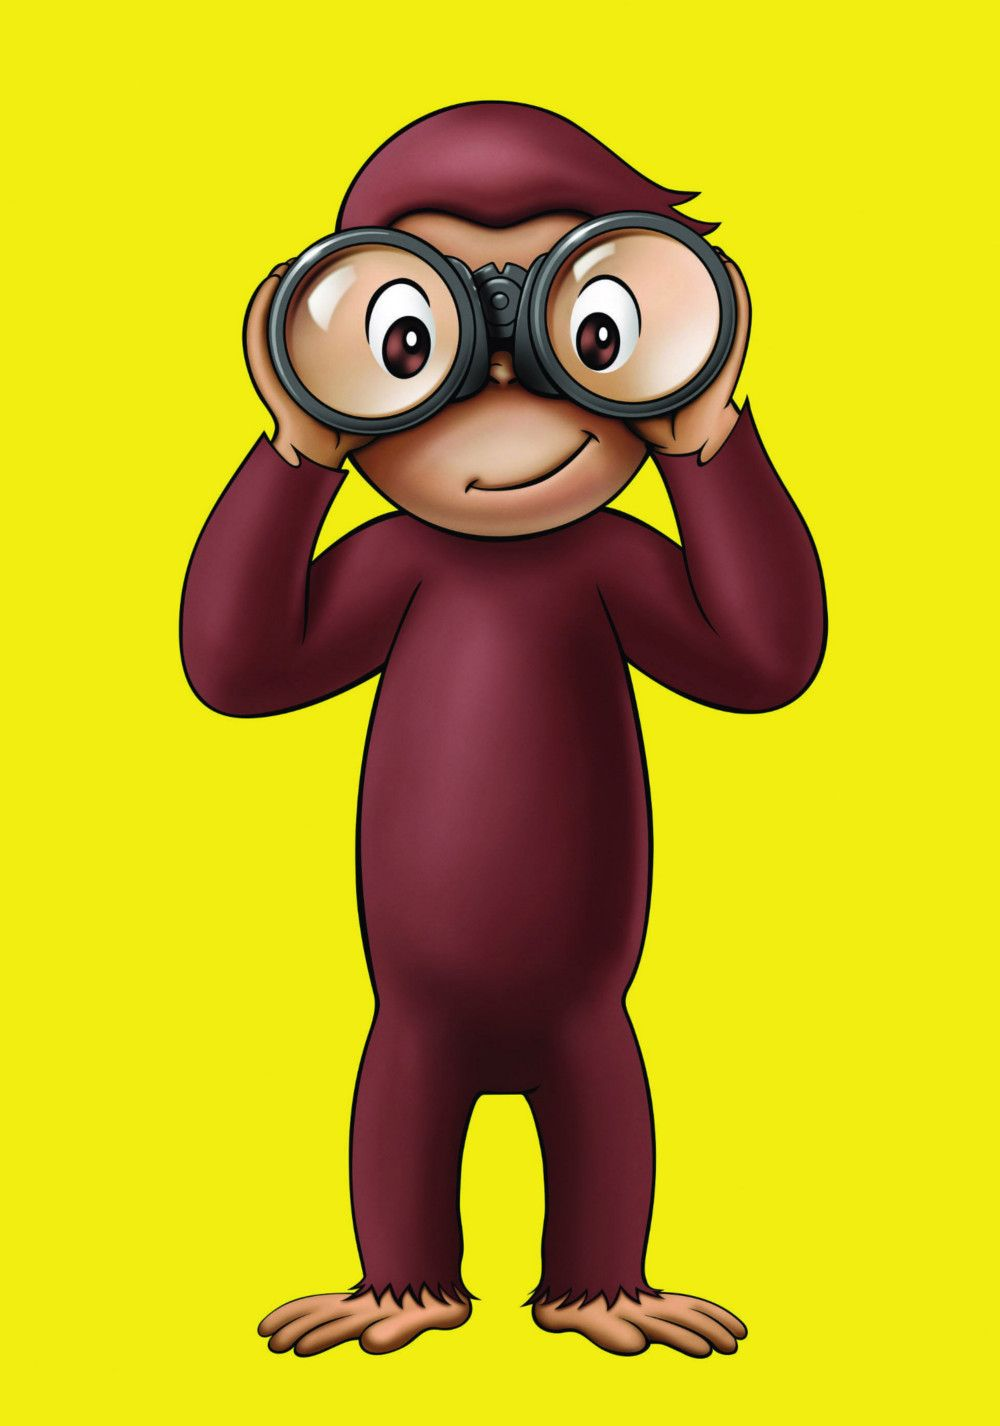 Curious George Iphone Wallpapers Top Free Curious George Iphone Backgrounds Wallpaperaccess